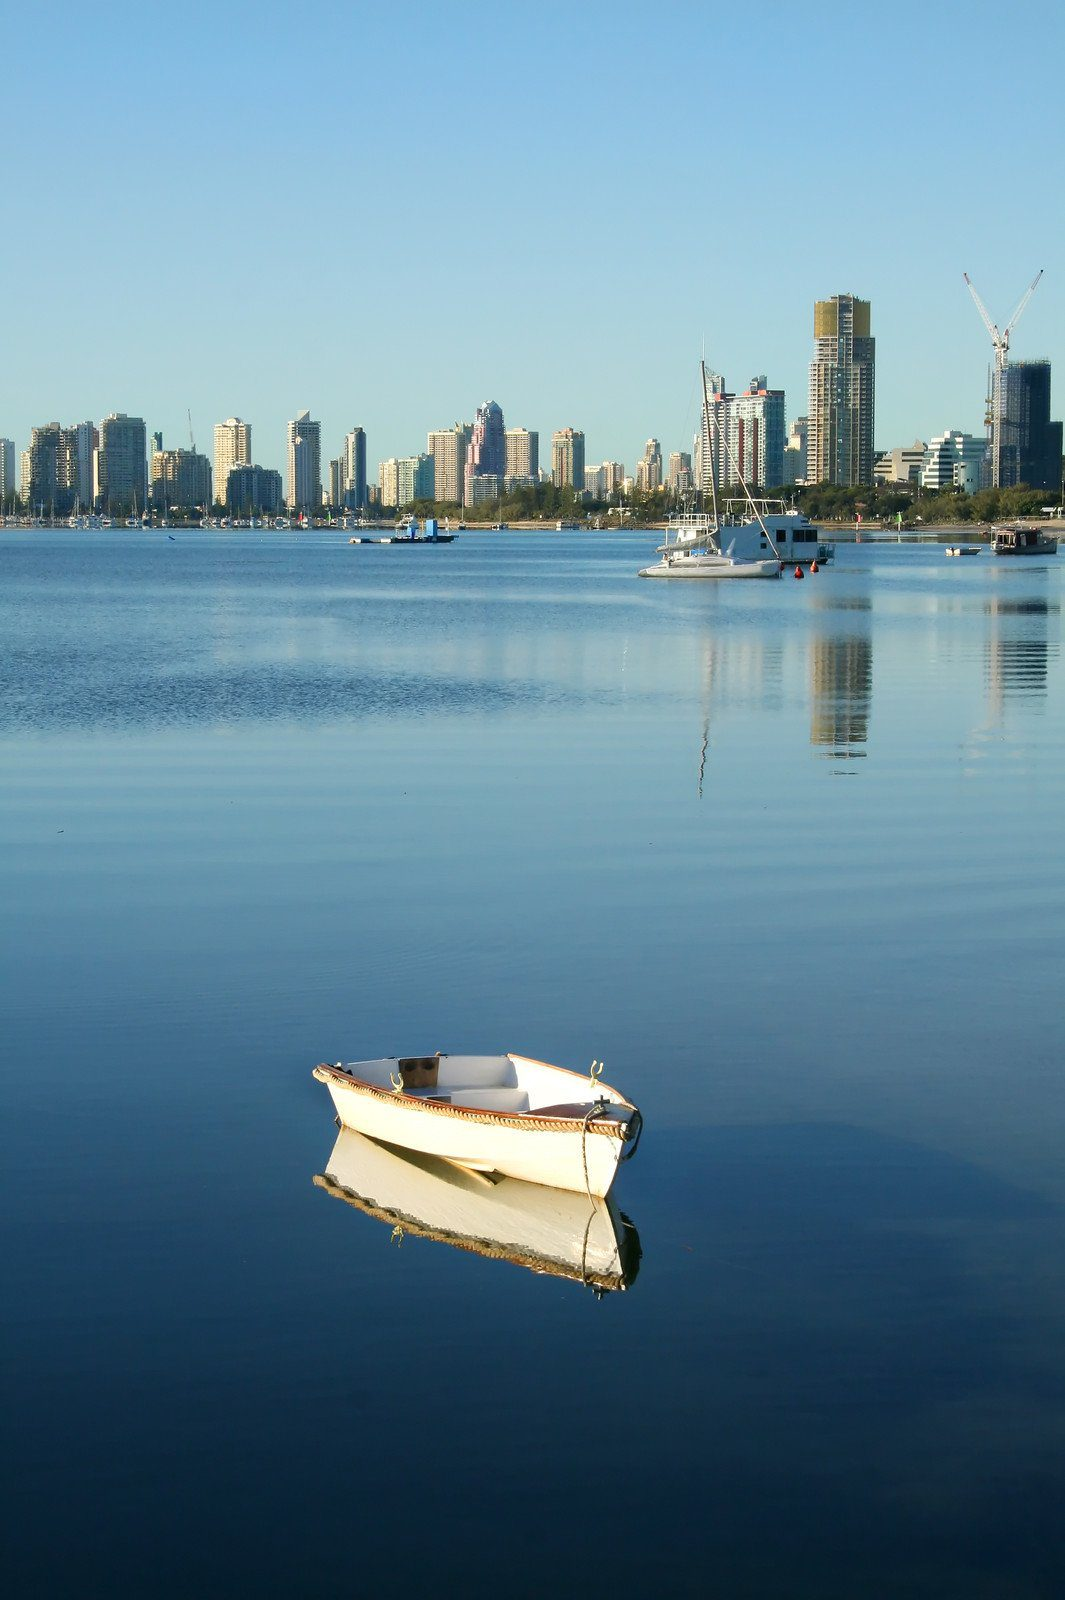 Looking at Surfers Paradise across the Broadwater, Gold Coast, Australia